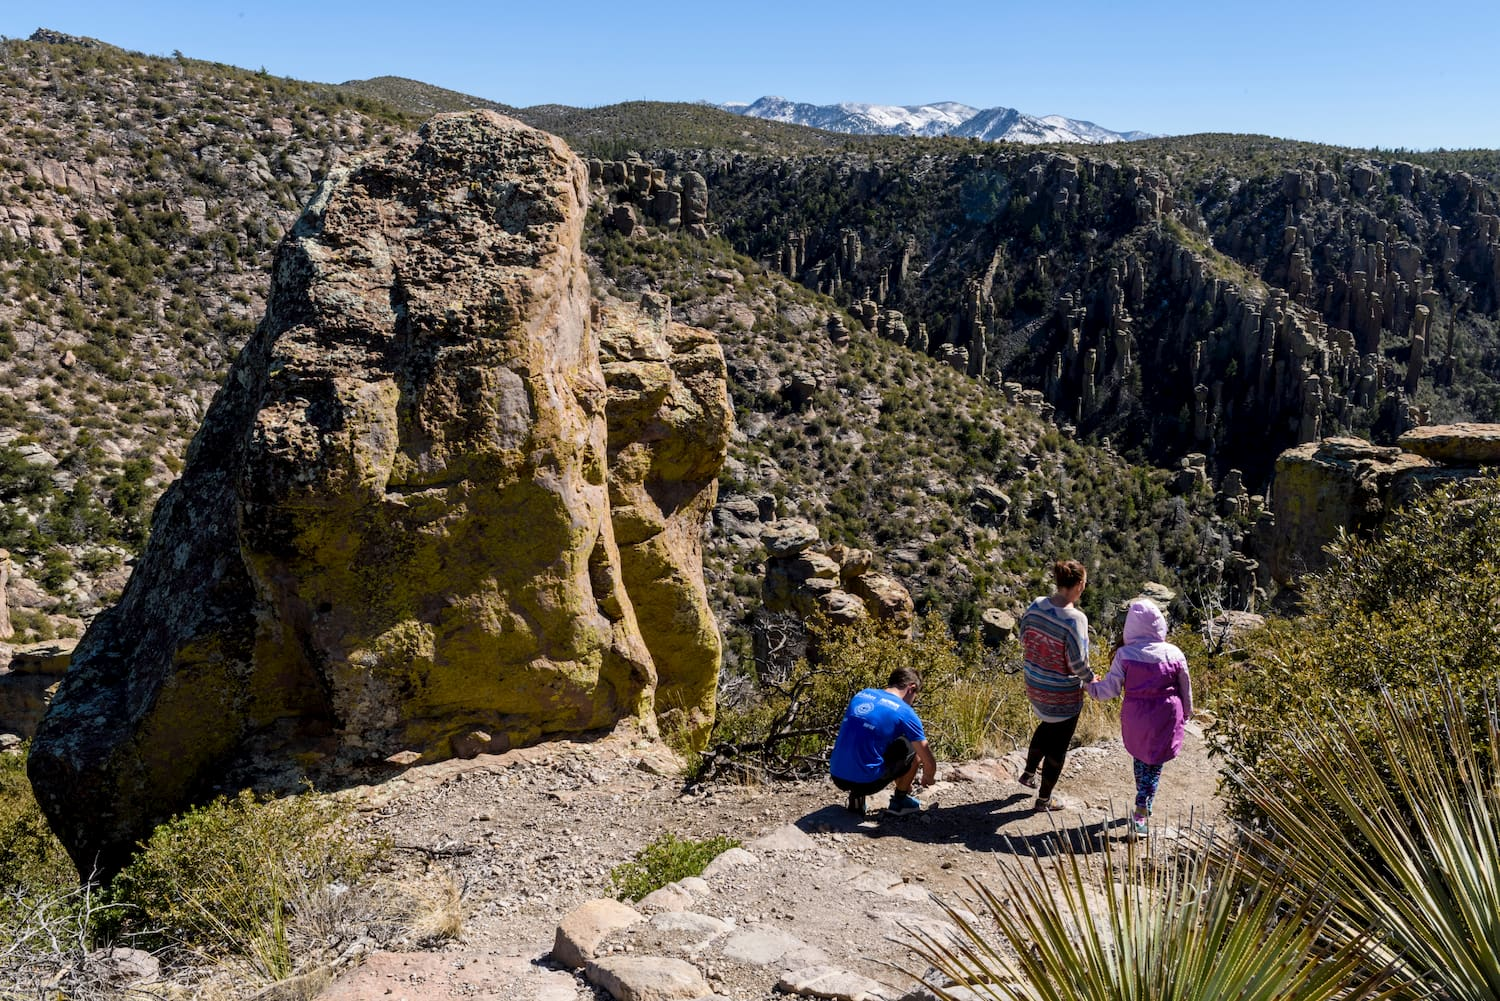 Chiricahua National Monument offers Great Arizona Camping Right In Tucson's Backyard